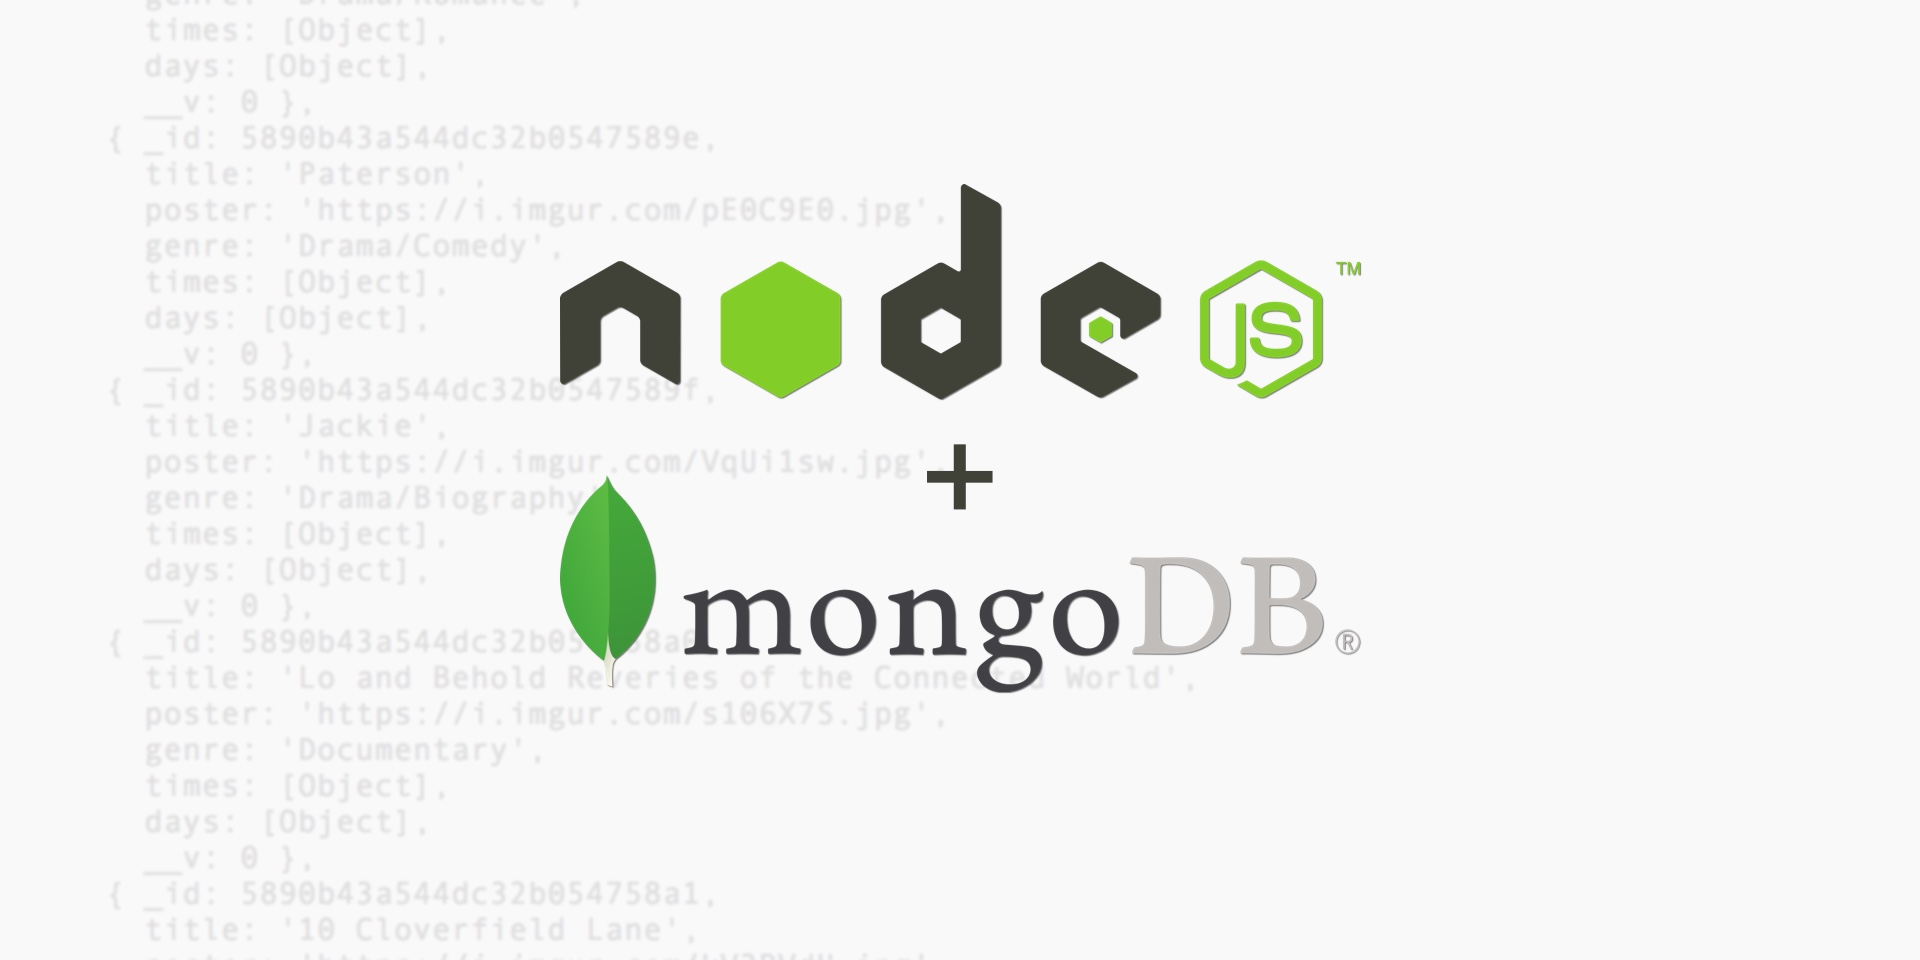 API Backend with Node js, Express, and MongoDB for React Native Apps